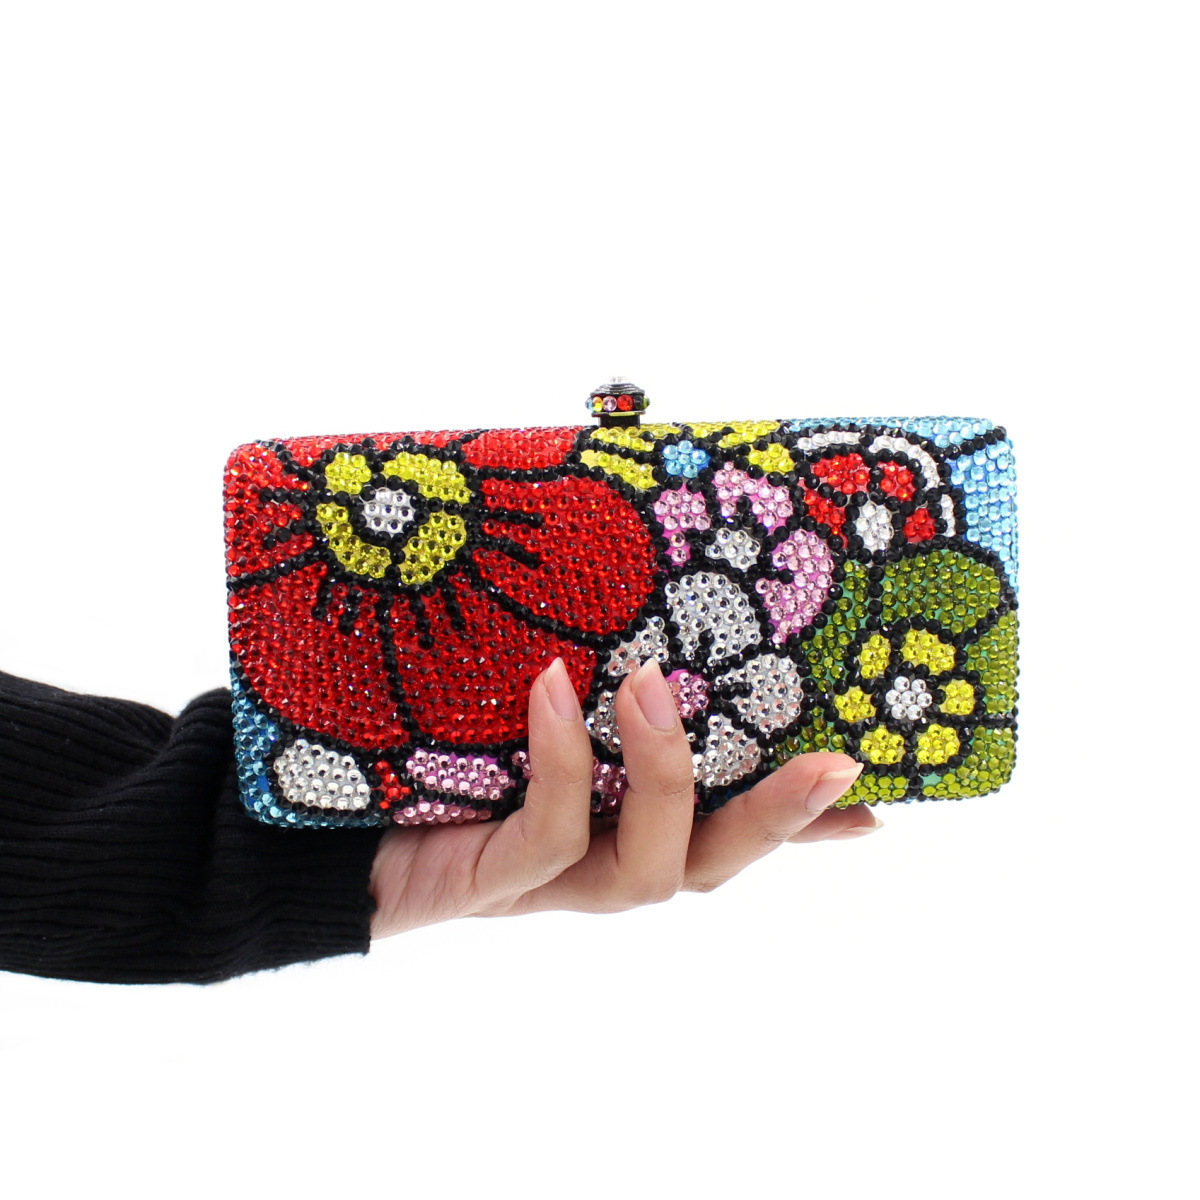 2017 New Fashion Colorful Day Clutches Bag Ladies Single Shoulder Handbag Luxury Diamonds Bride Wedding Party Evening Bags Purse  2017 new luxury diamonds women day clutches bag ladies single shoulder handbag bride wedding party evening bags handbags purses